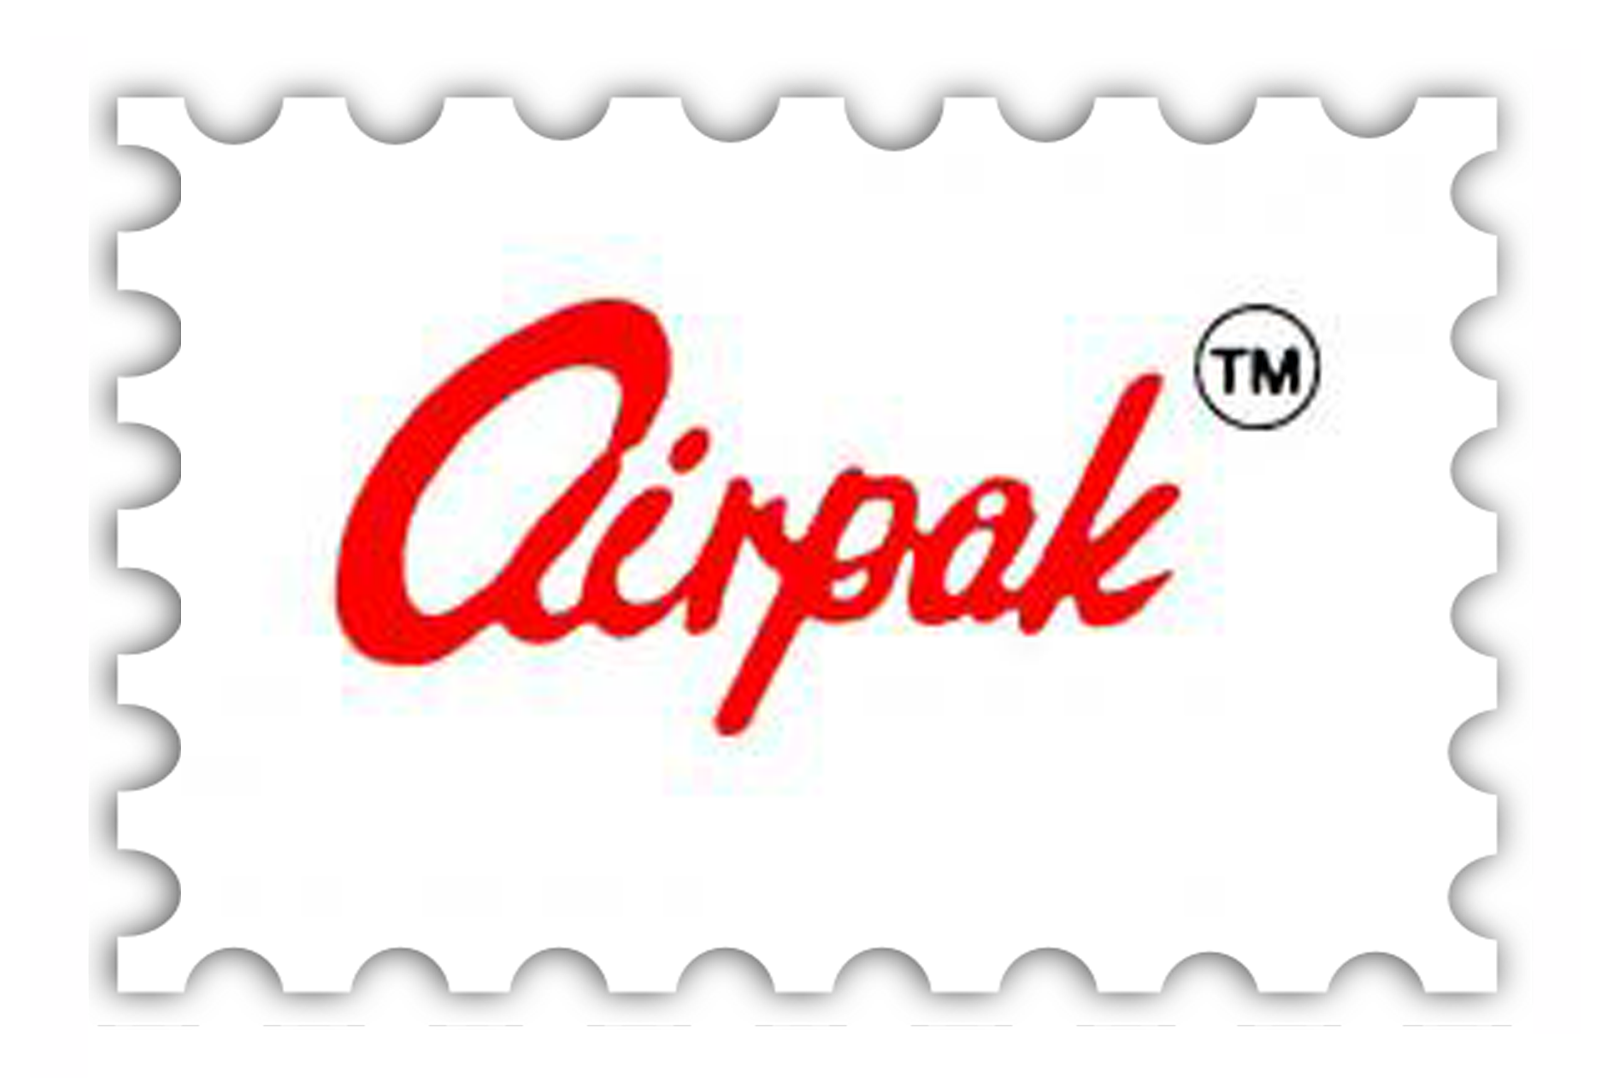 Shipment Tracking Airpak